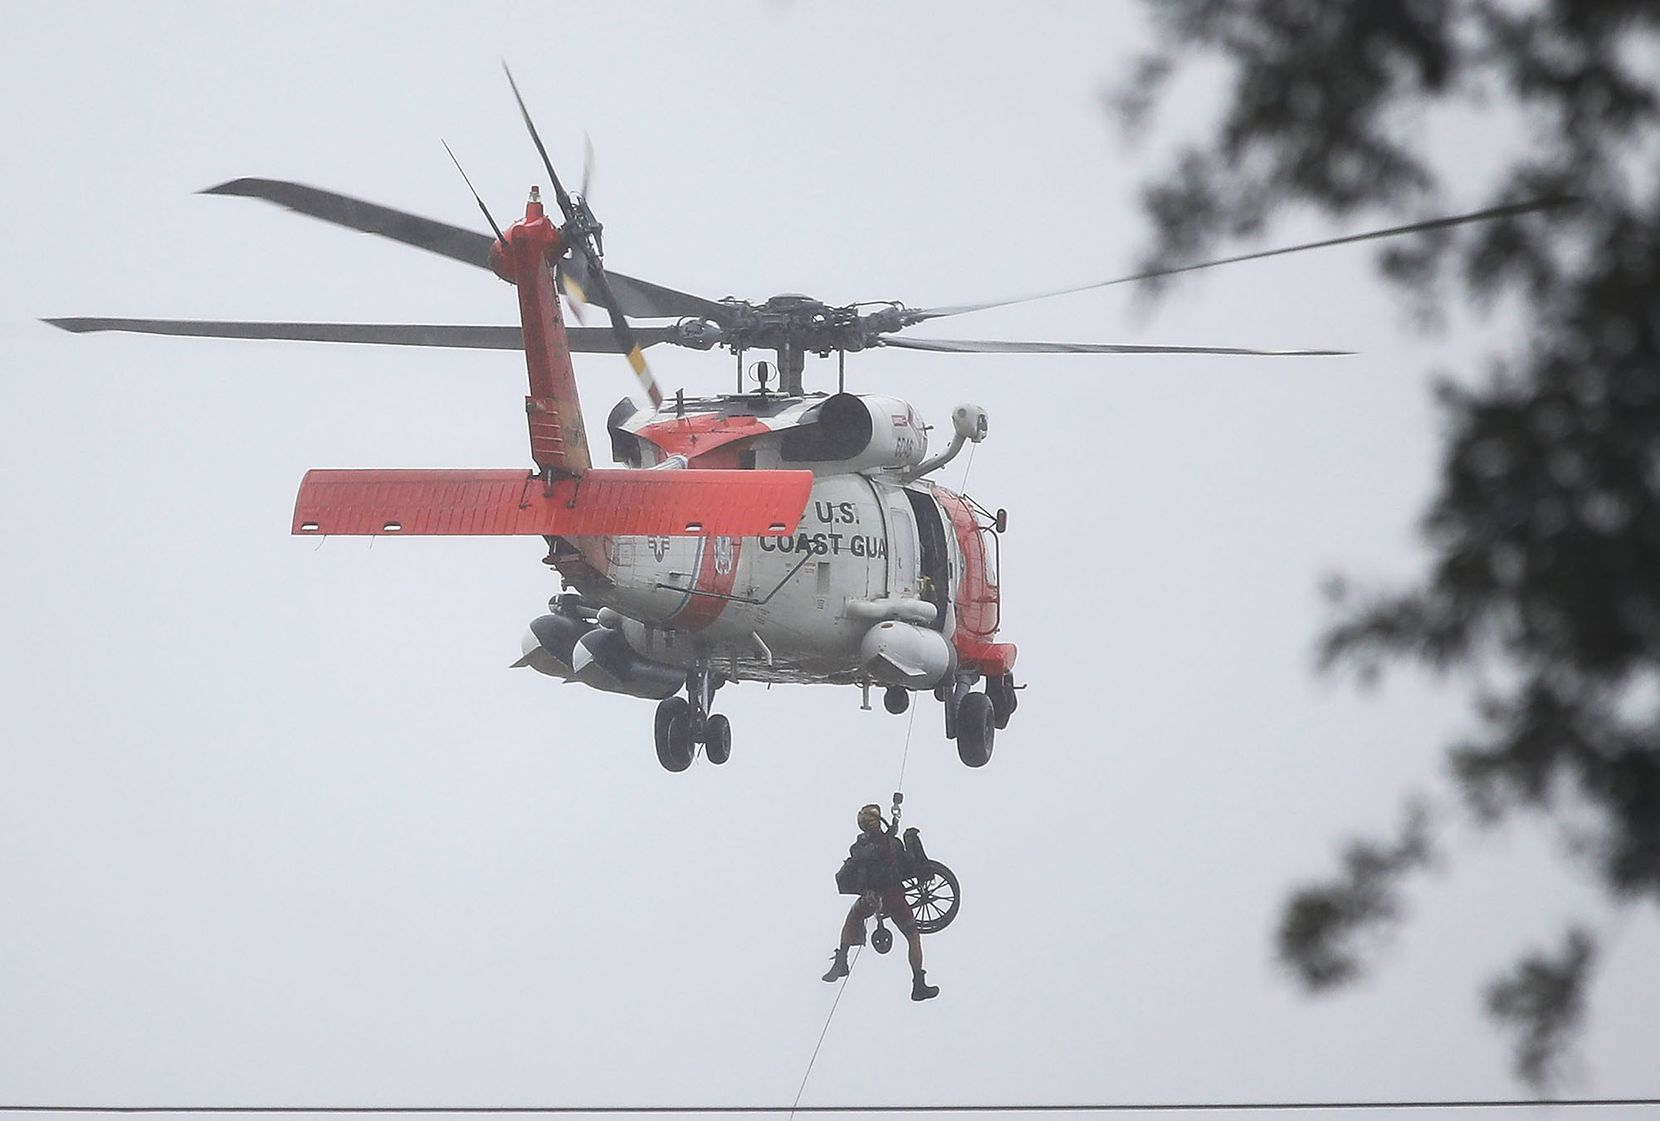 A Coast Guard helicopter hoists a wheel chair on board after lifting a person to safety  from the area that was inundated with flooding from Hurricane Harvey on August 28, 2017 in Houston, Texas.